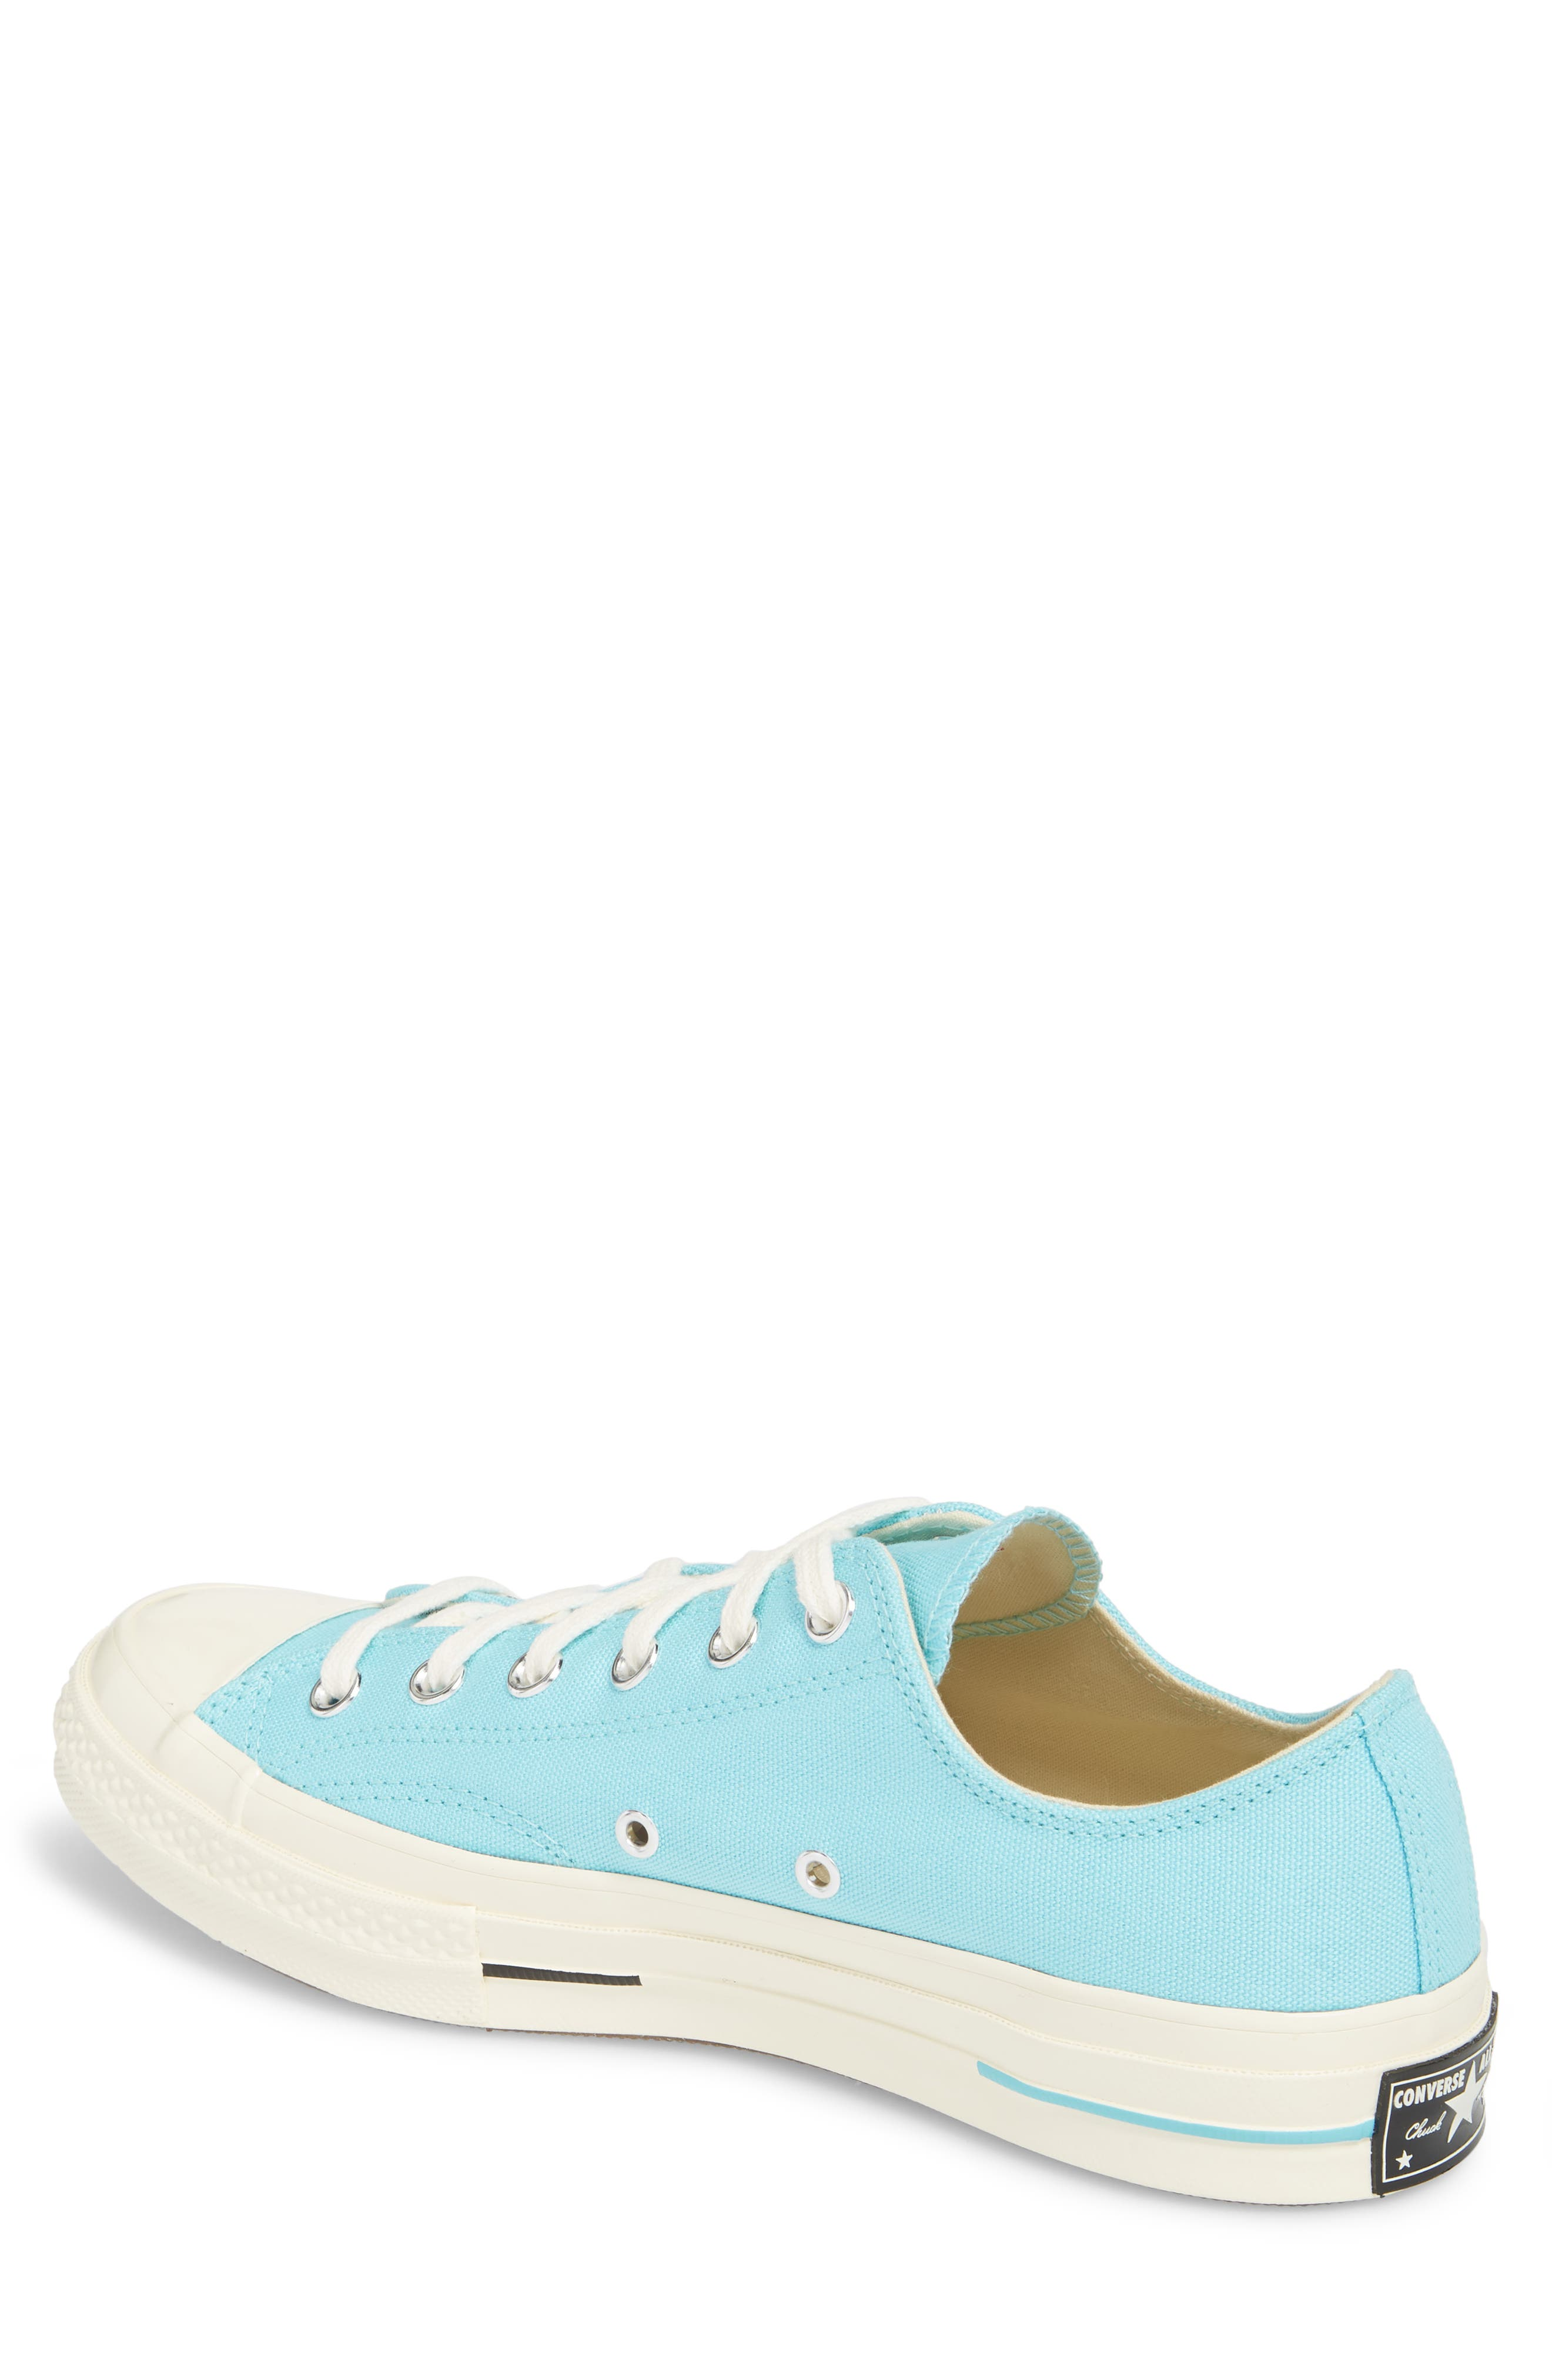 Chuck Taylor<sup>®</sup> All Star<sup>®</sup> 70 Brights Low Top Sneaker,                             Alternate thumbnail 2, color,                             Beached Aqua